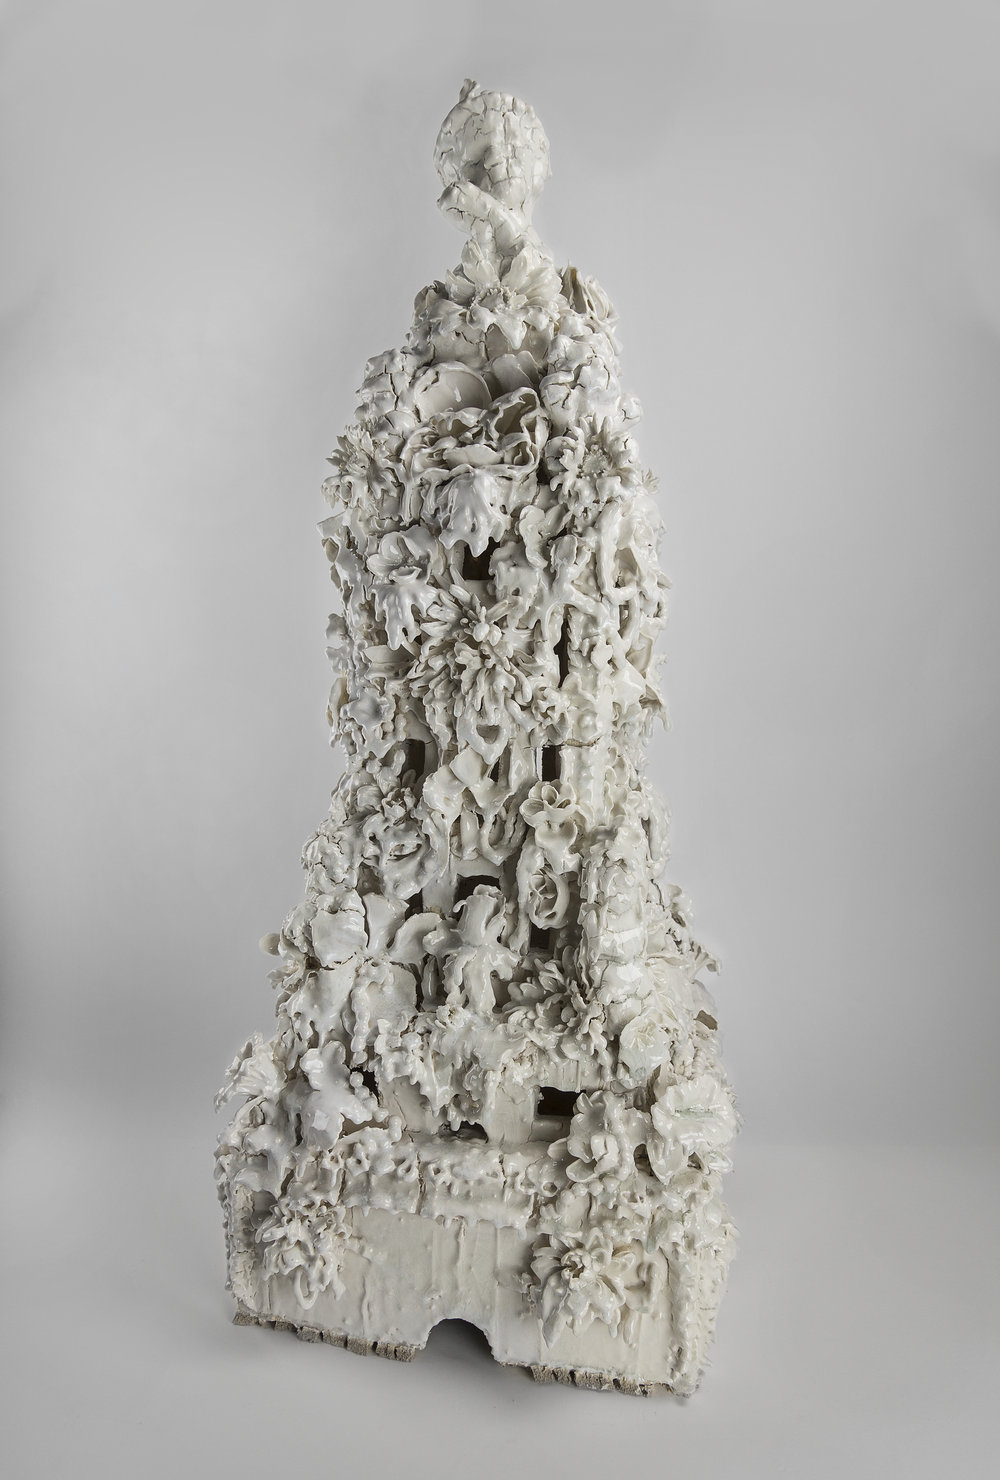 Anthony Sonnenberg   Model for a Monument (Dreams last for so long, even after you're gone)   Porcelain over stoneware, found ceramic  tchotchkes, glaze  35h x 15w x 15d in 2018